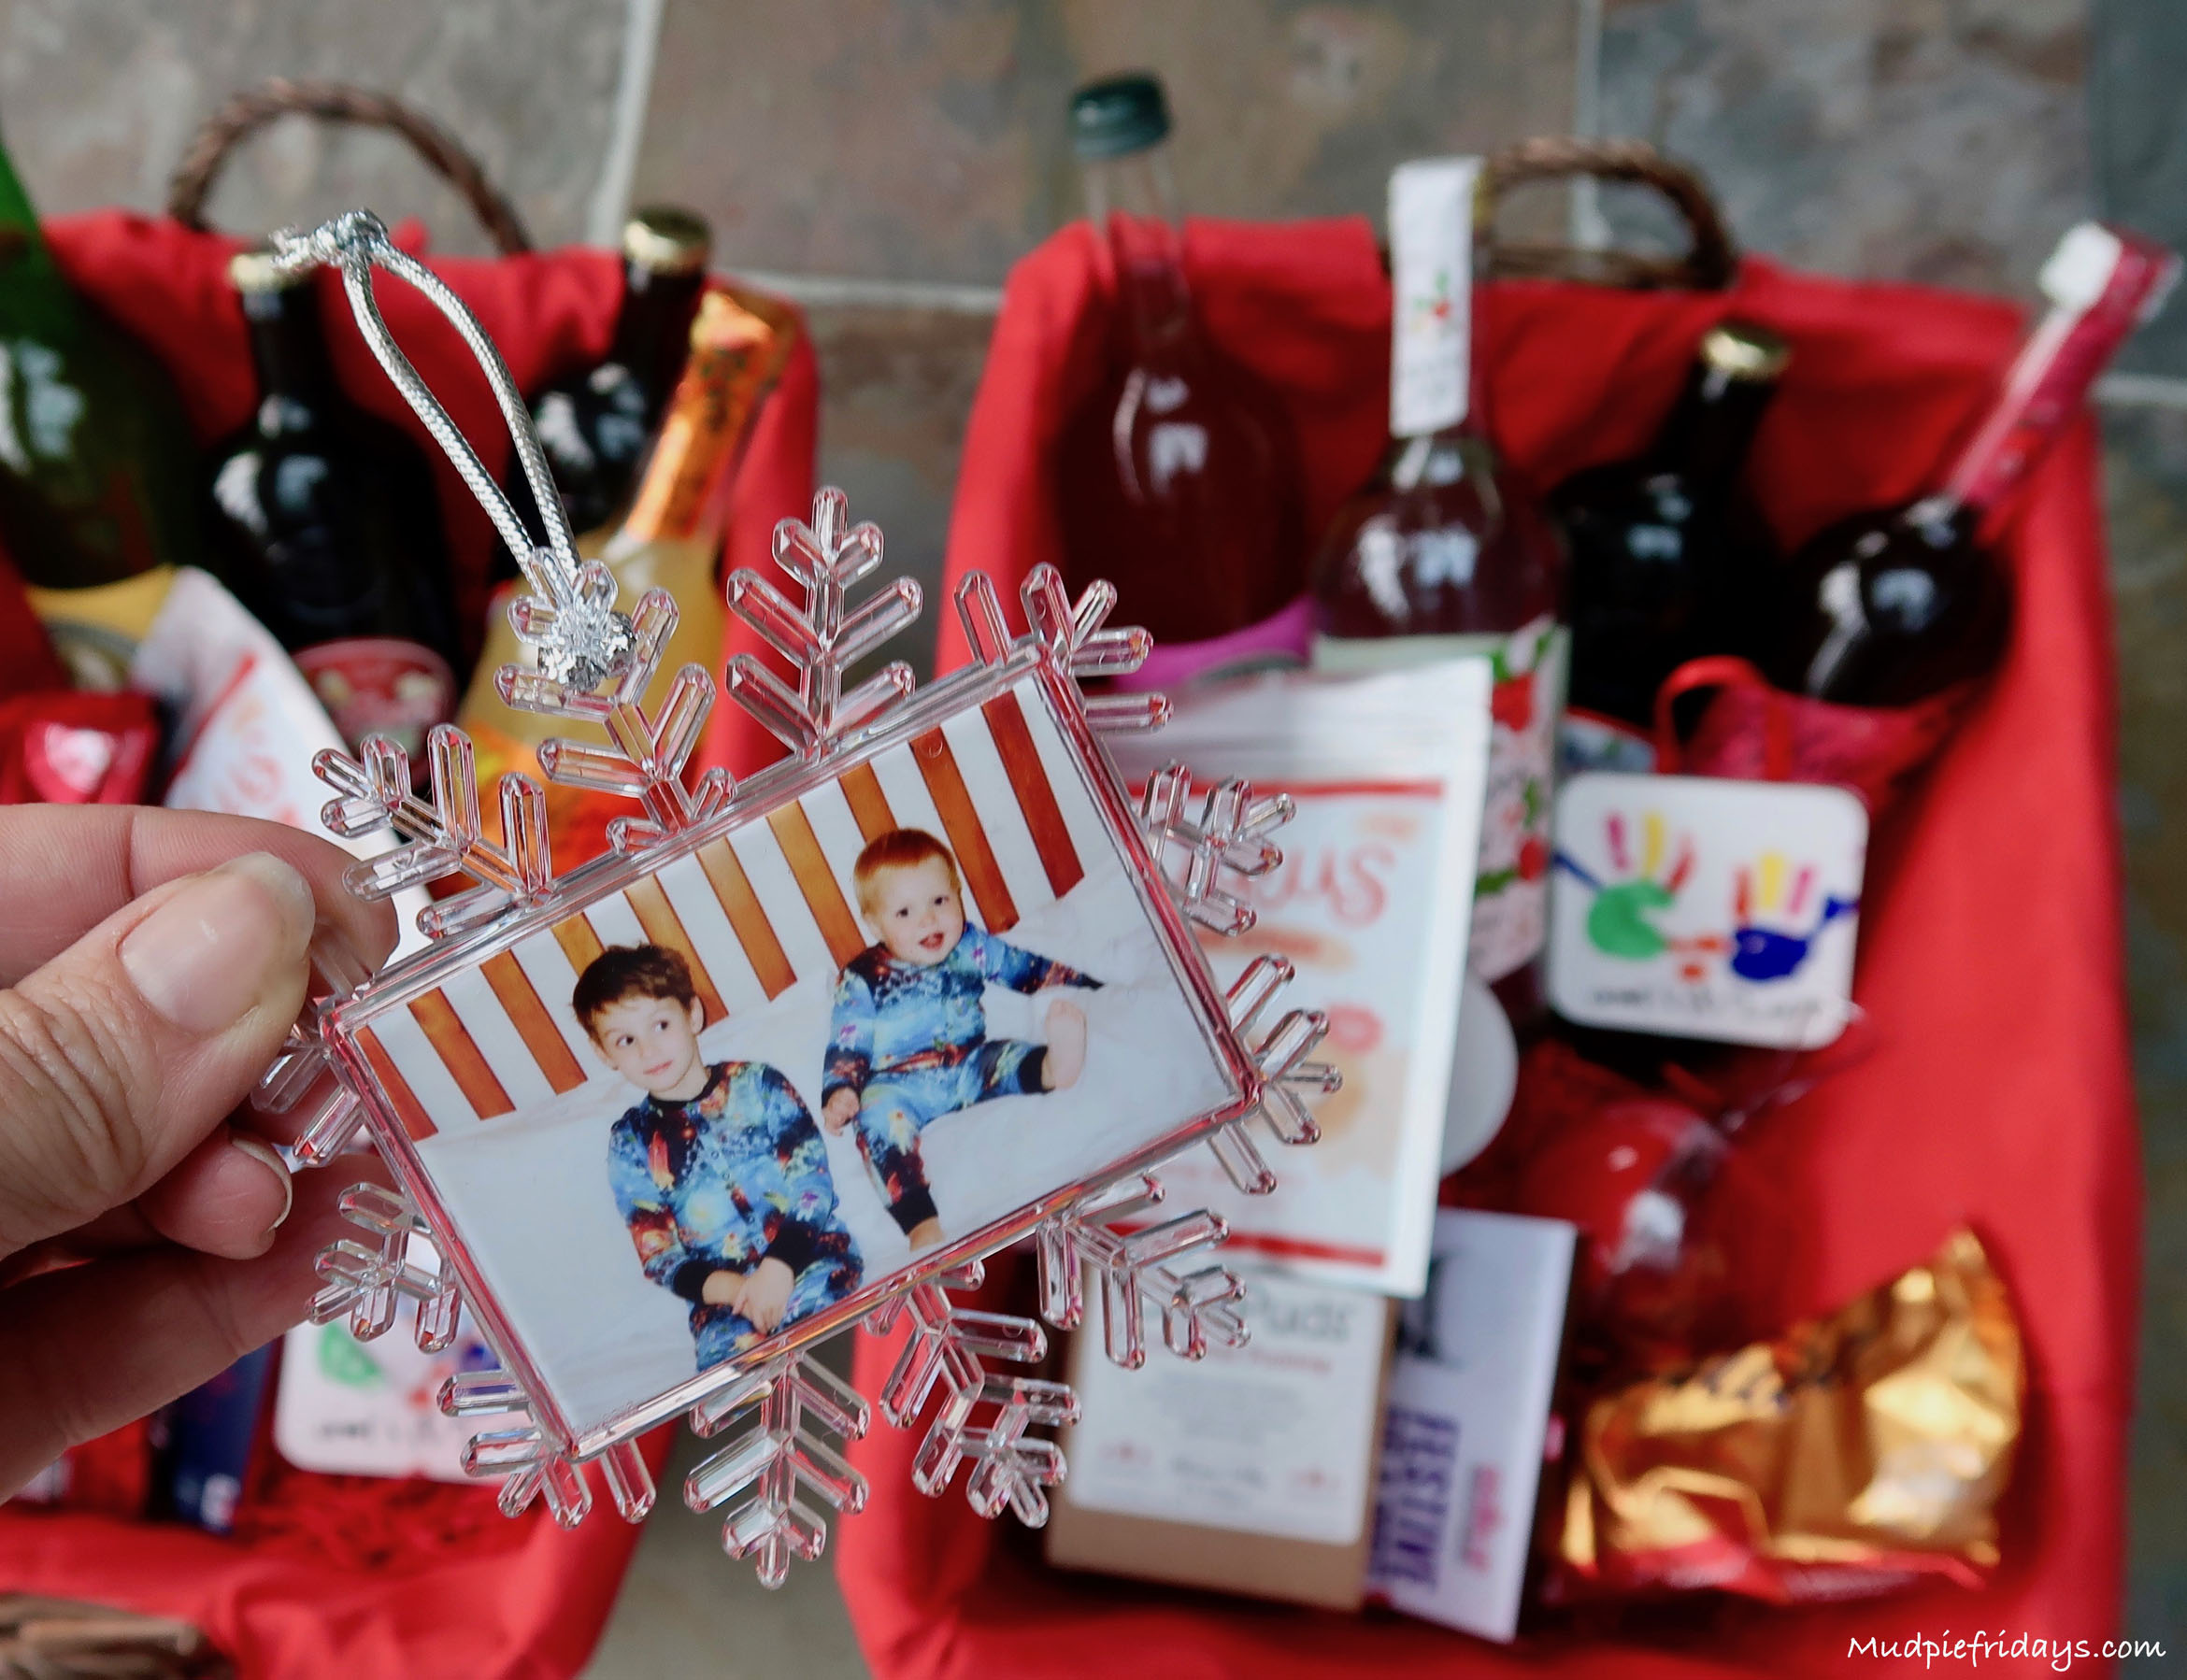 10 Personalised Content Ideas For Grandparent Christmas Hampers Mudpiefridays Com